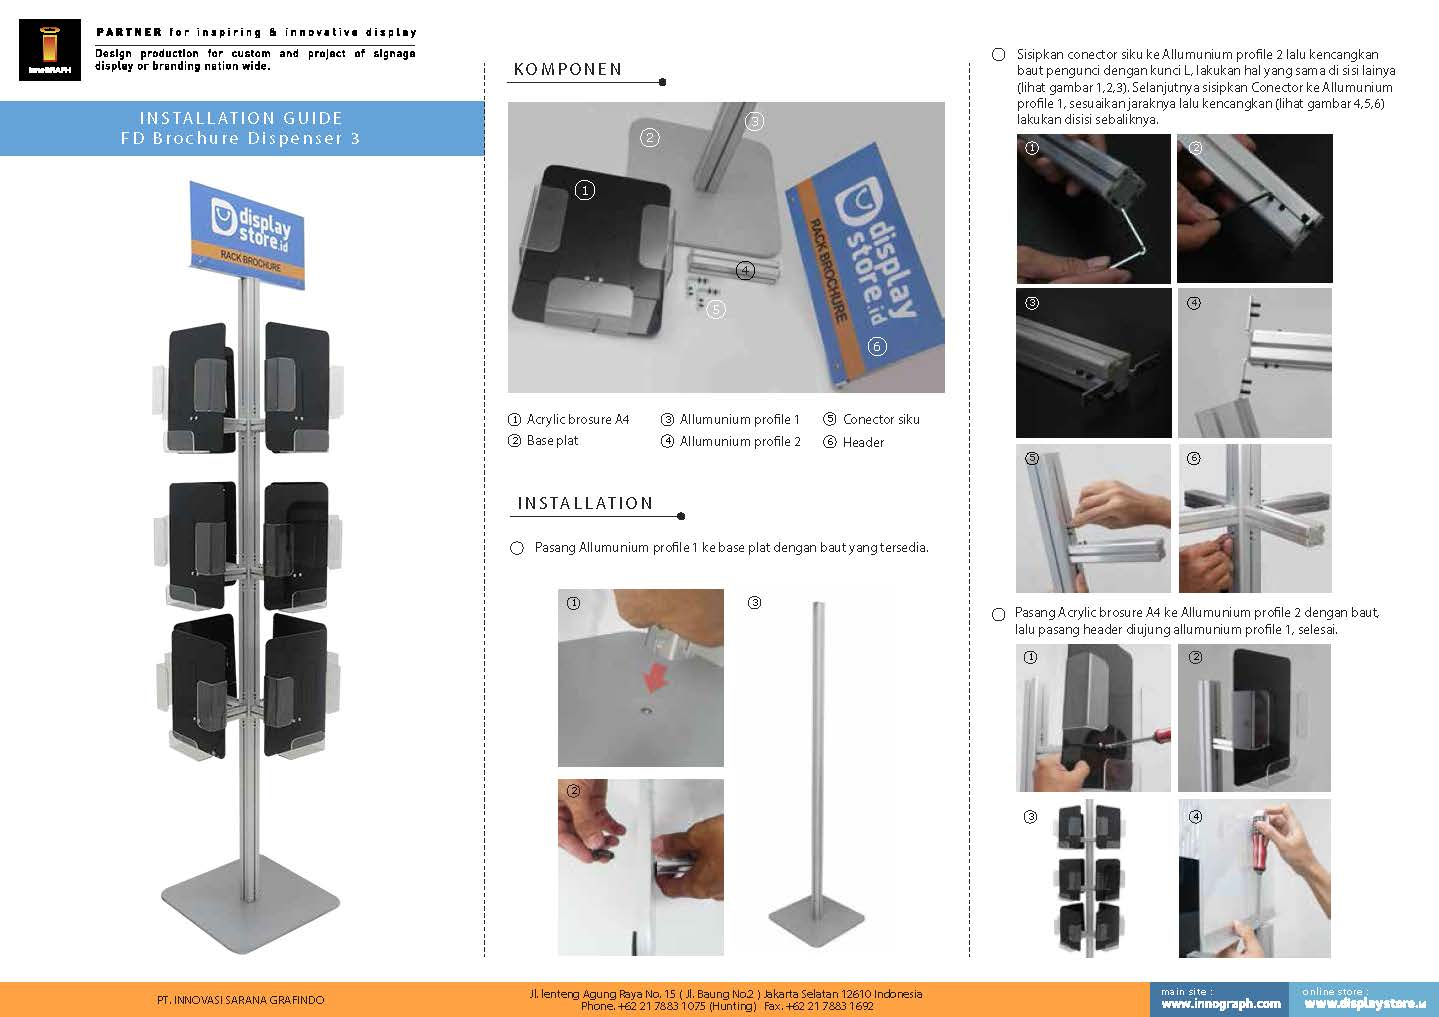 petunjuk pasang FD Brochure Dispenser 3